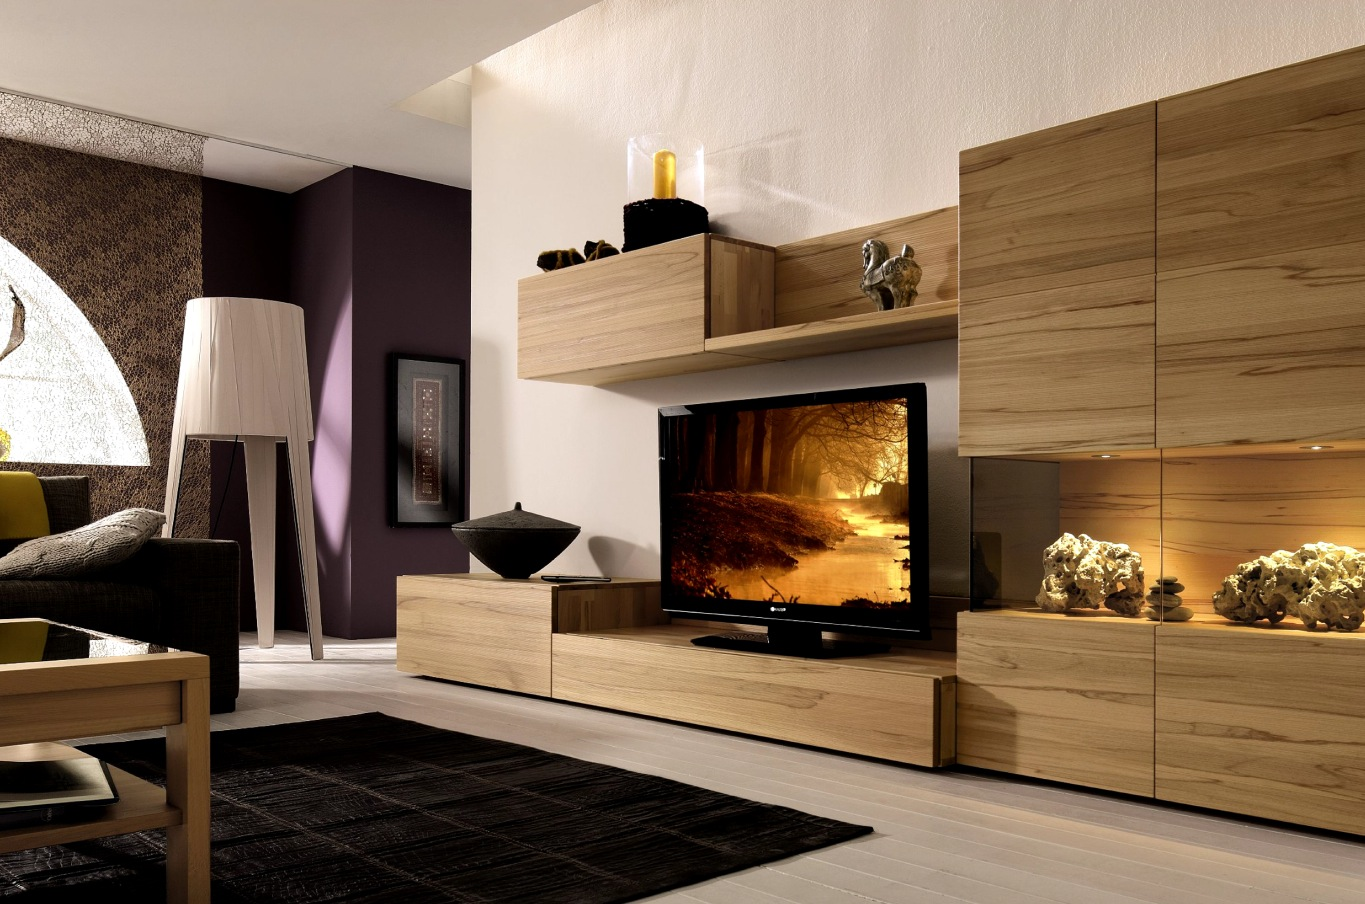 Mueble Para La Tele Wooden Finish Wall Unit Combinations From Hülsta